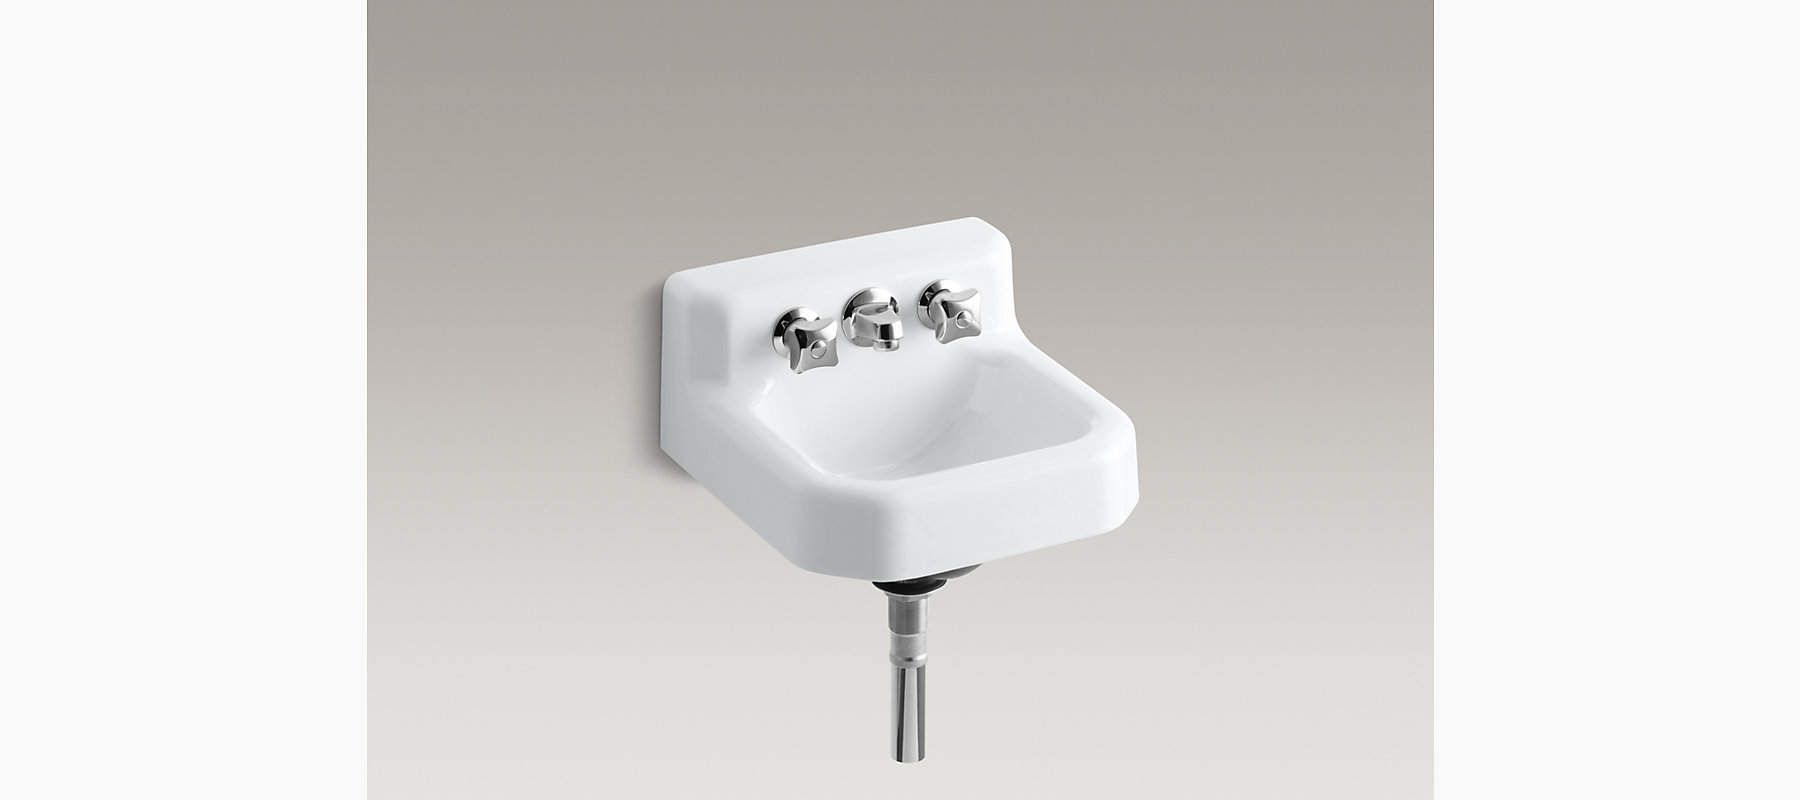 kitchen us how commercial faucet n com browse sink all kohler shop to faucets